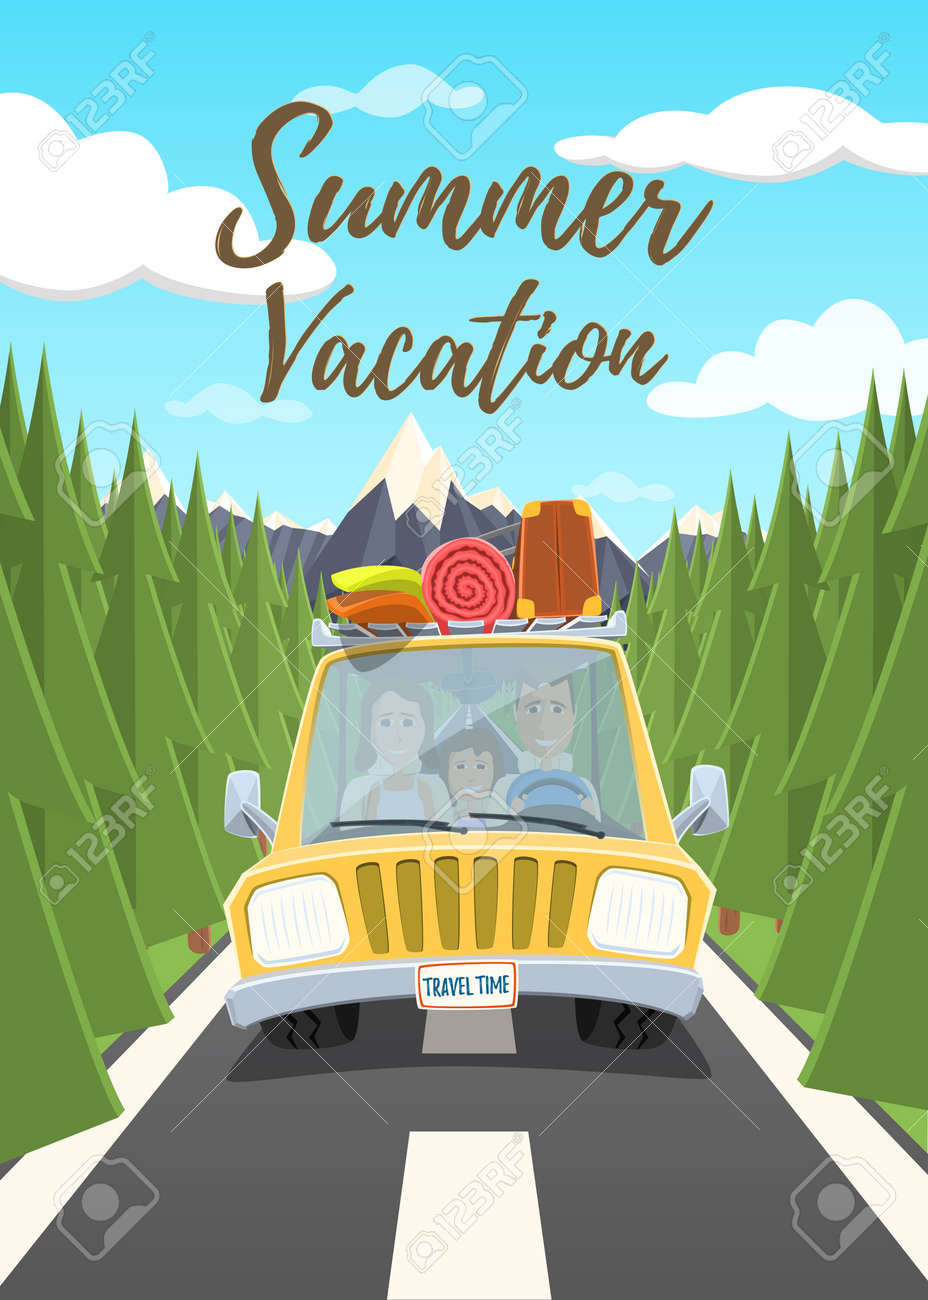 Summer Vacation Poster Happy Family Traveling In The Car Illustration Stock Vector